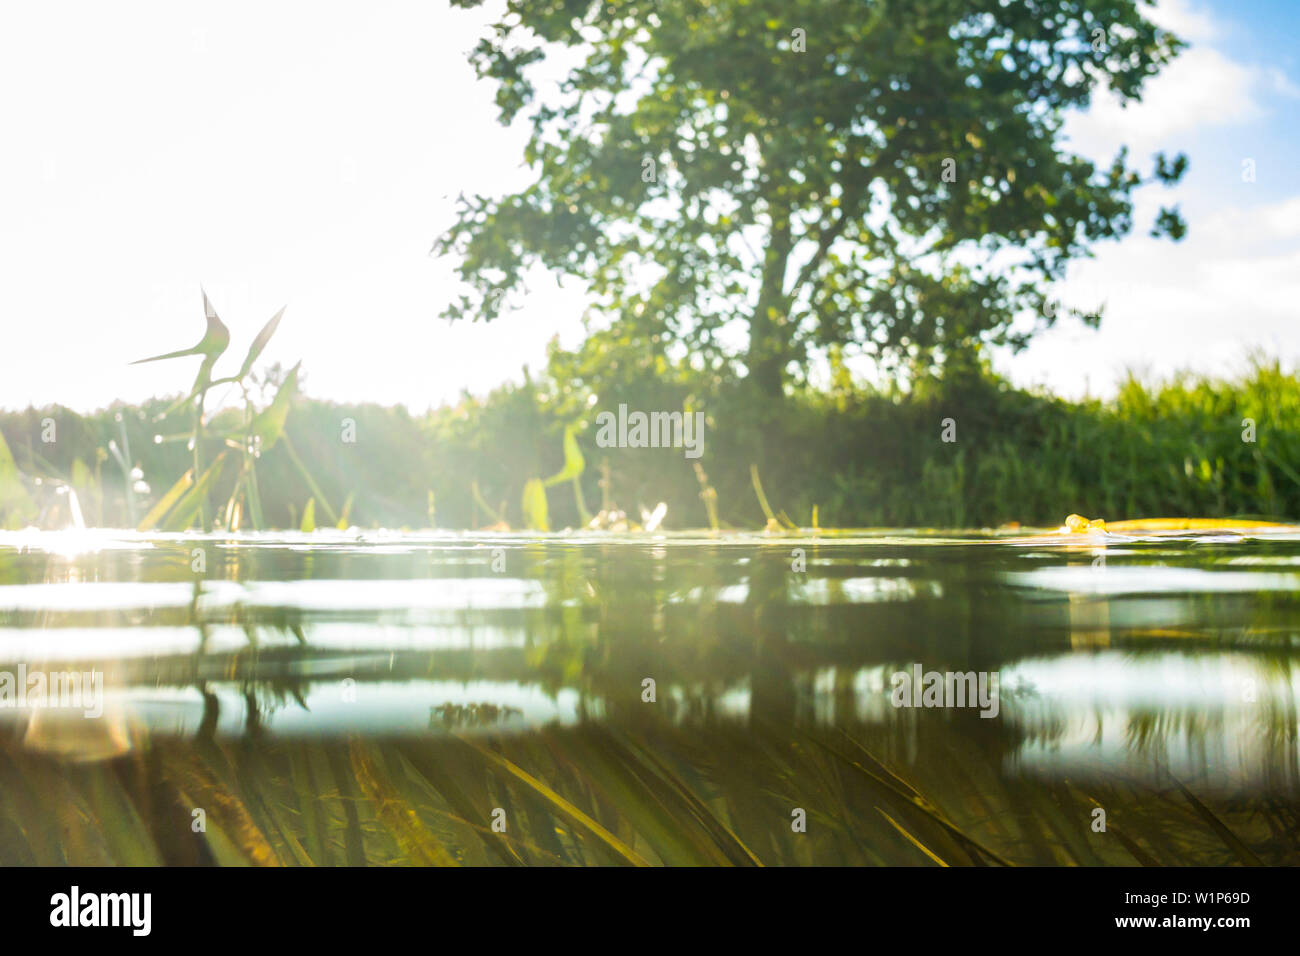 Kayak tour on the river Spree, Water Surface, Spreewald, Biosphere Reserve, Summer, Cultivated Land, Brandenburg, Germany - Stock Image